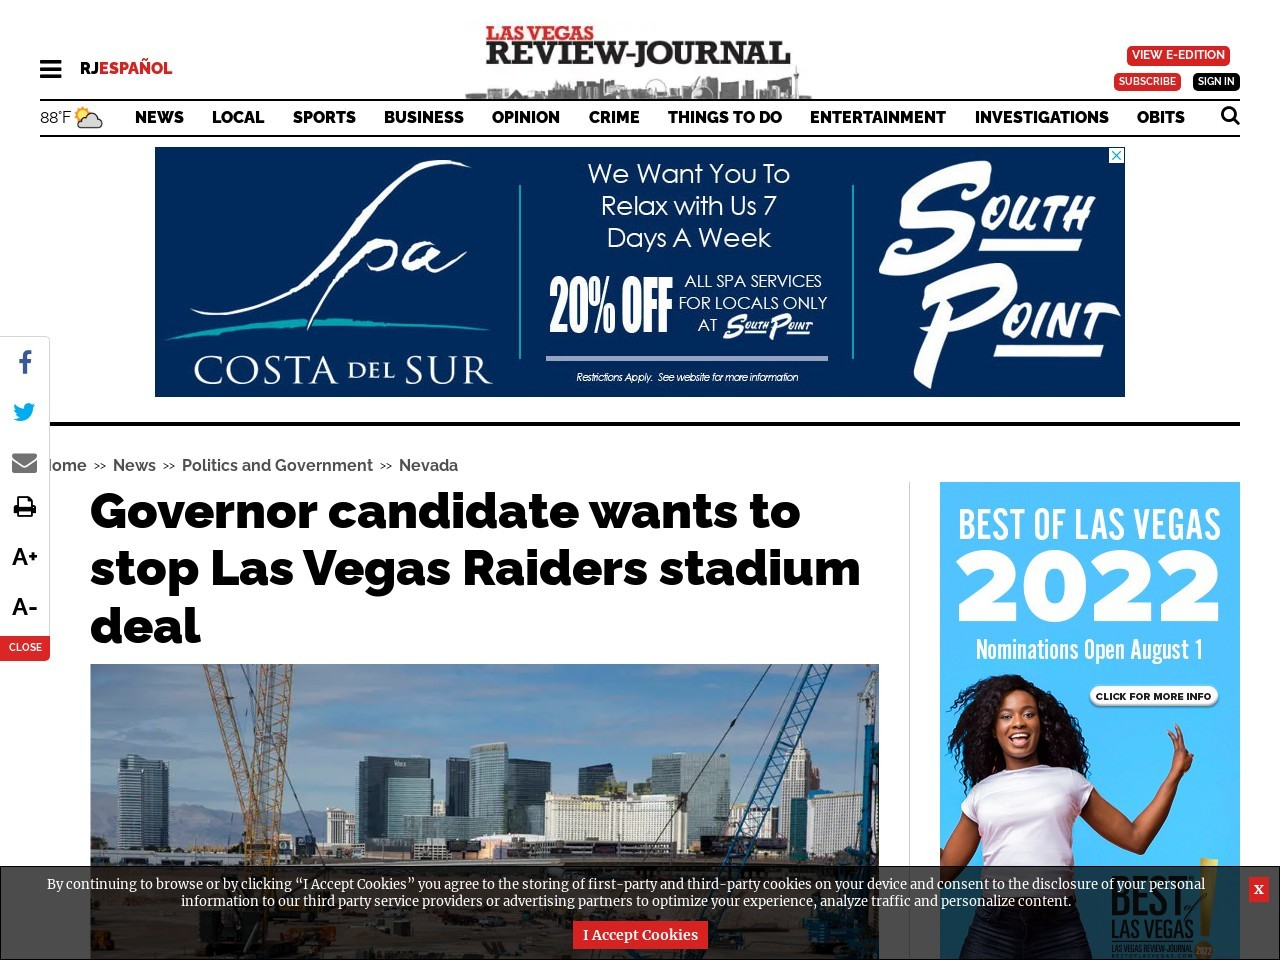 Governor candidate wants to stop Las Vegas Raiders stadium deal